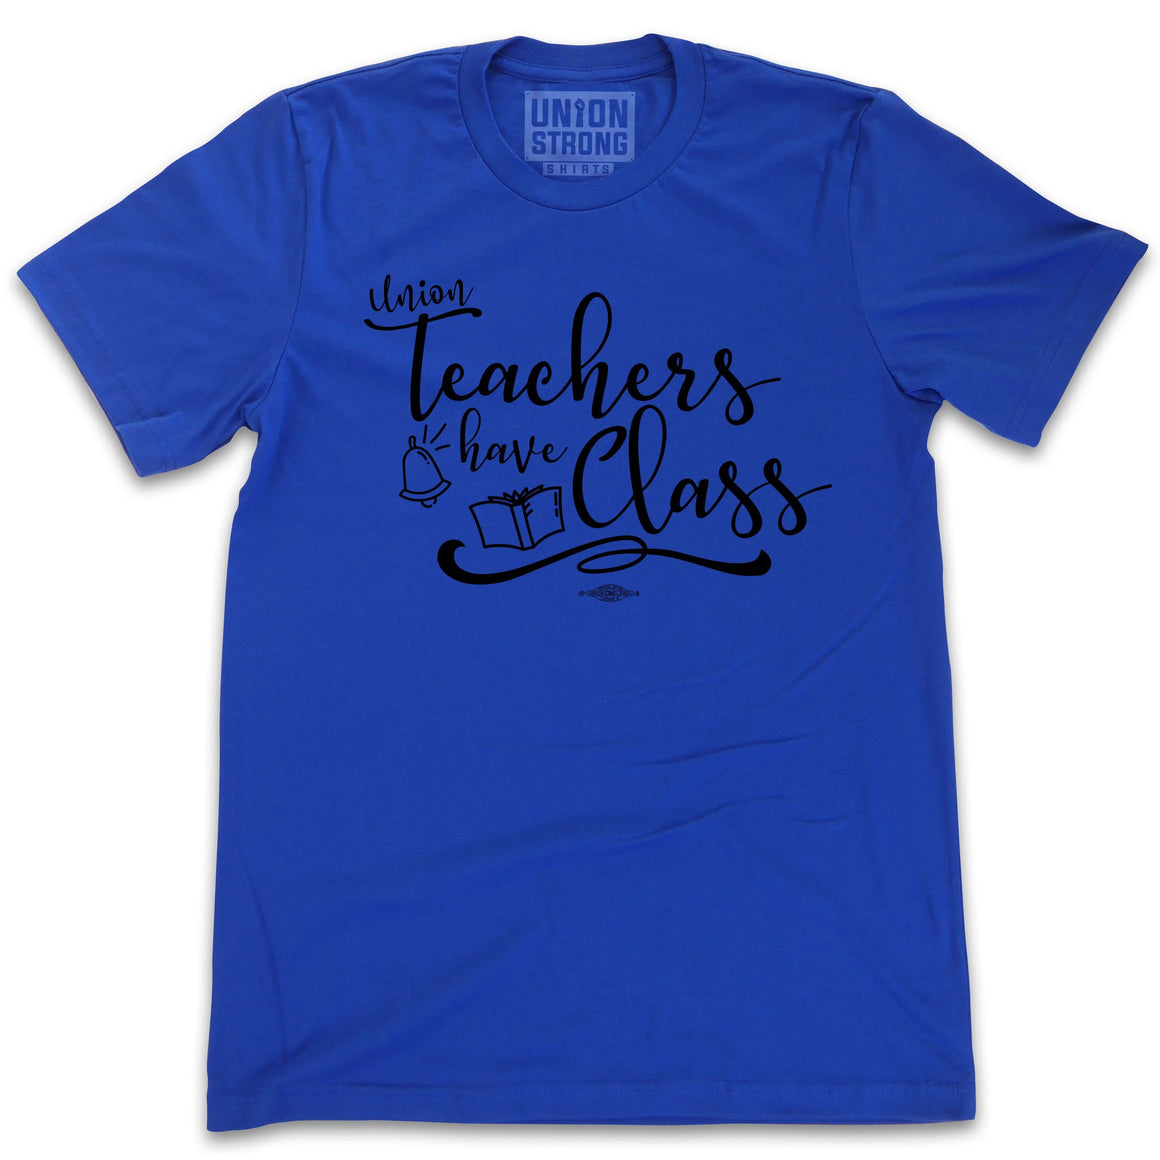 Union Teachers Have Class Shirts unionstrongshirts